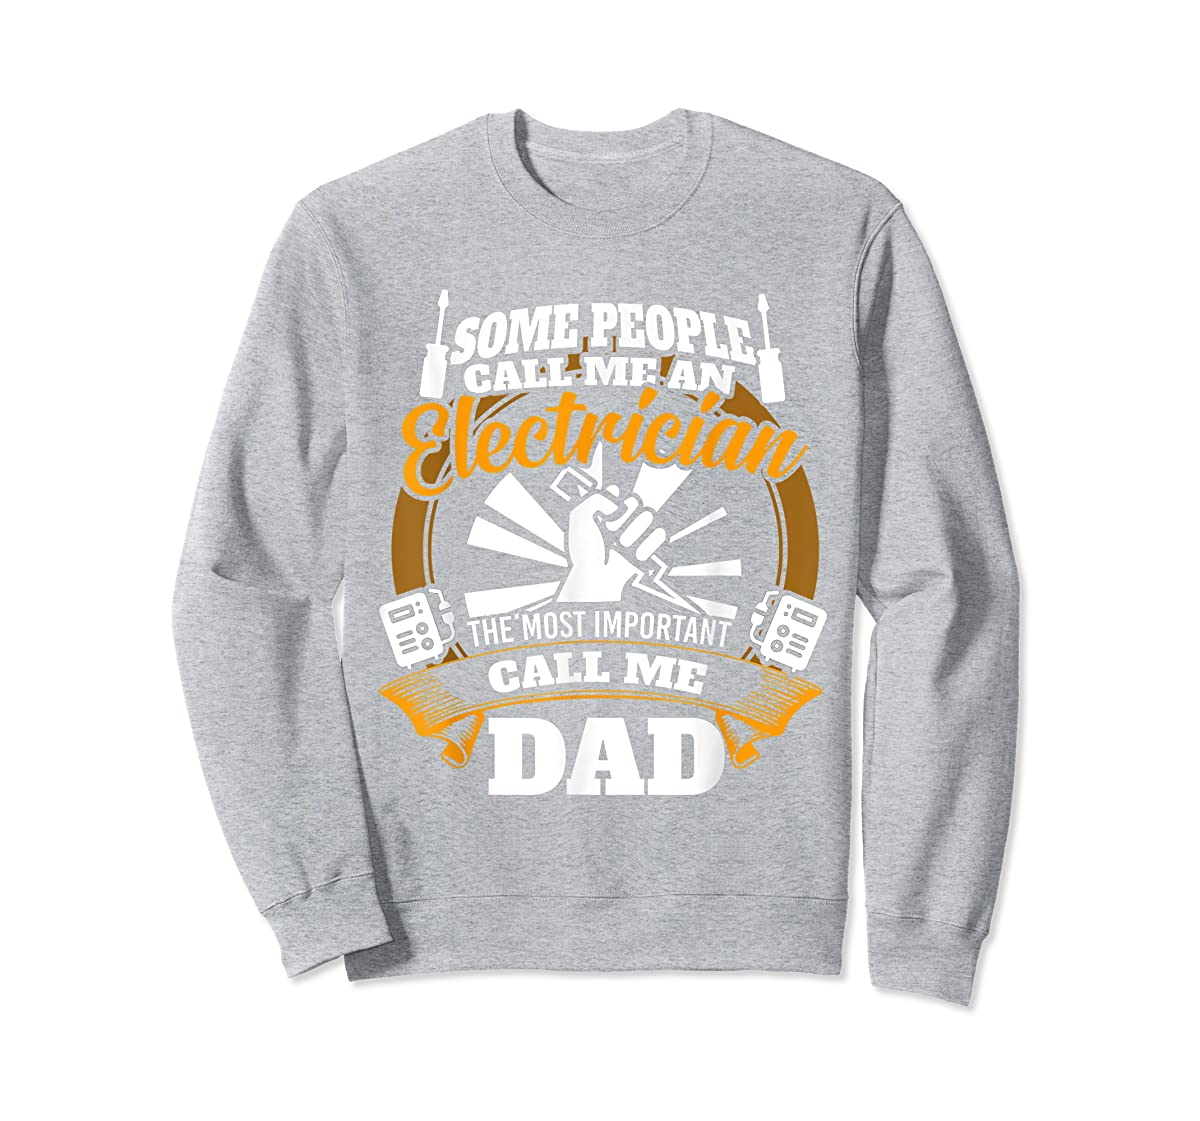 Mens Funny Electrician T-shirt for dad who loves technician gifts-Sweatshirt-Sport Grey